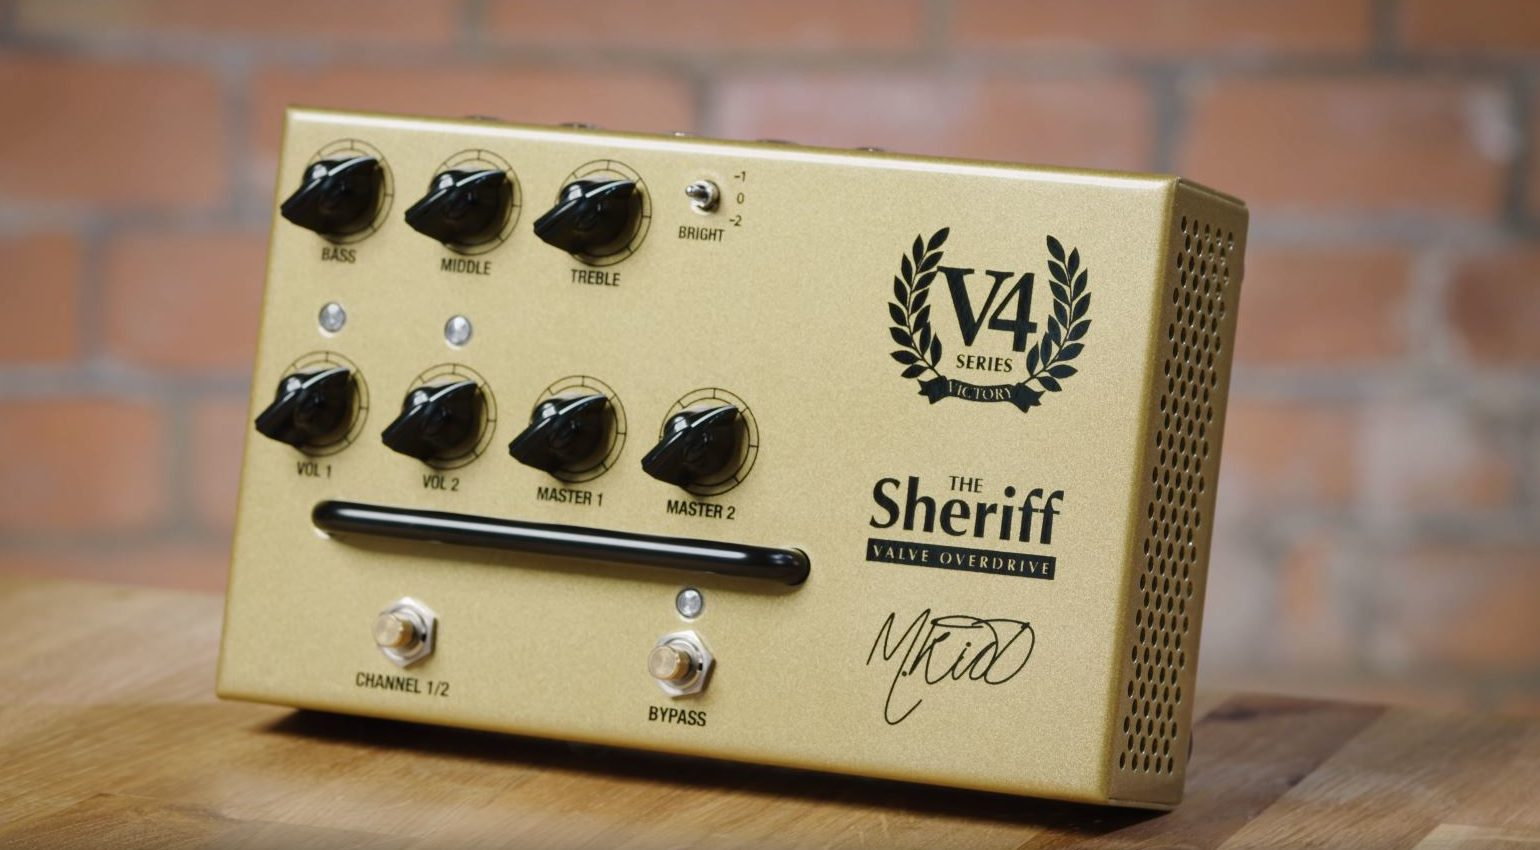 Victory V4 Preamp The Sheriff